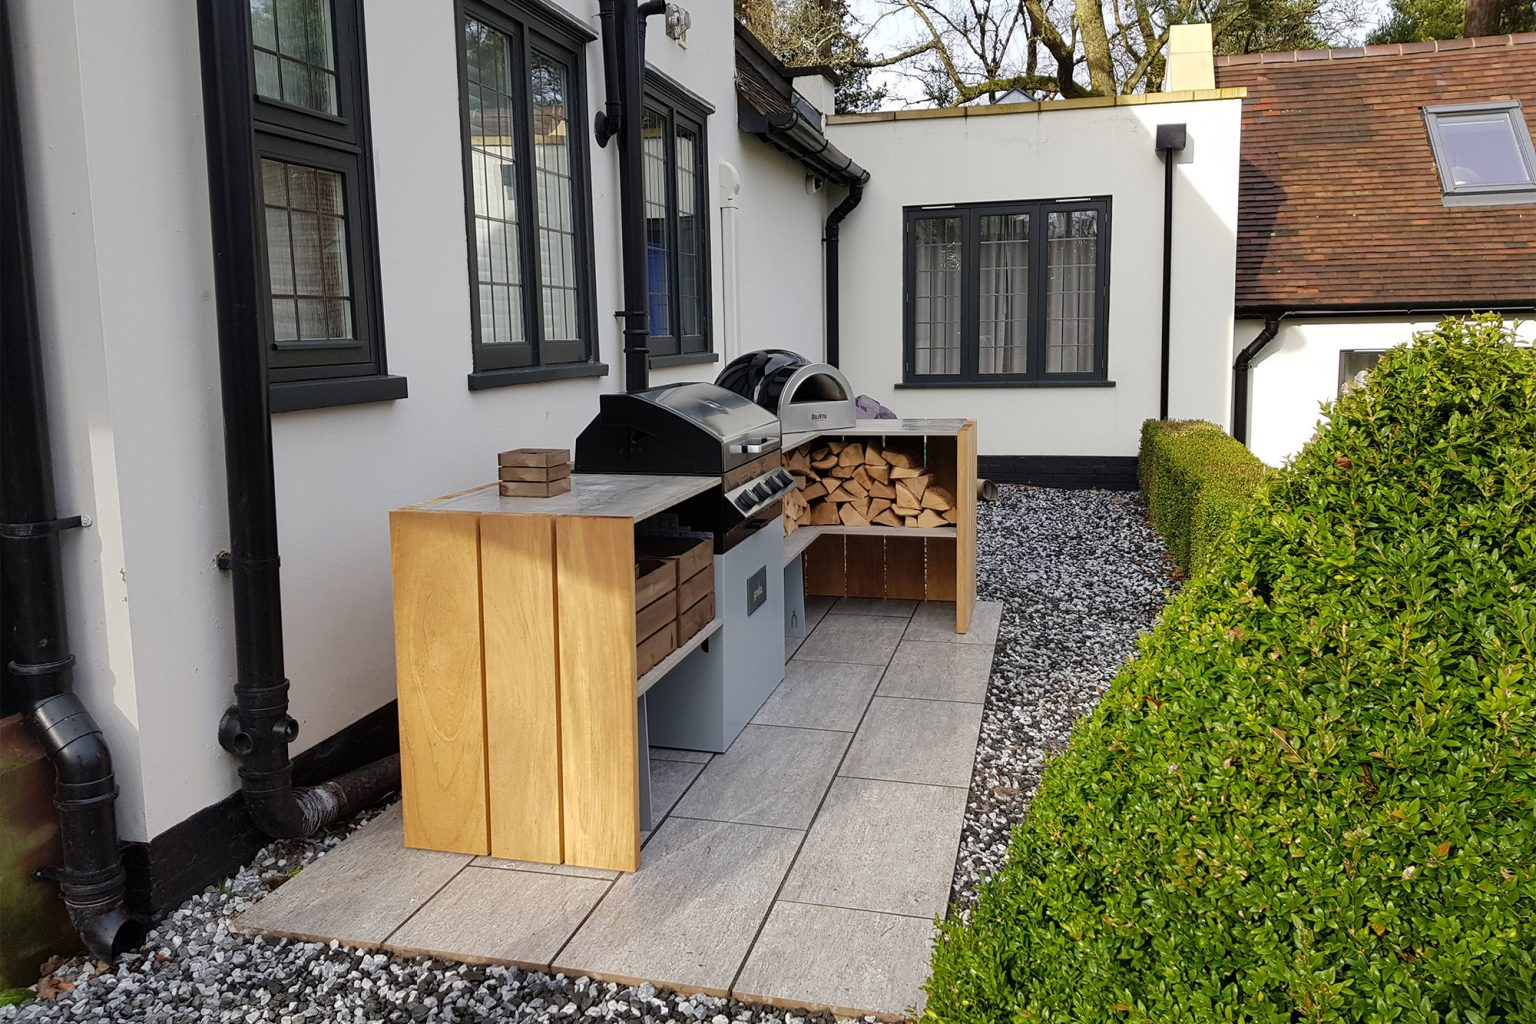 Grillo short L shaped kitchen with Delivita, Cadac, crates and logs